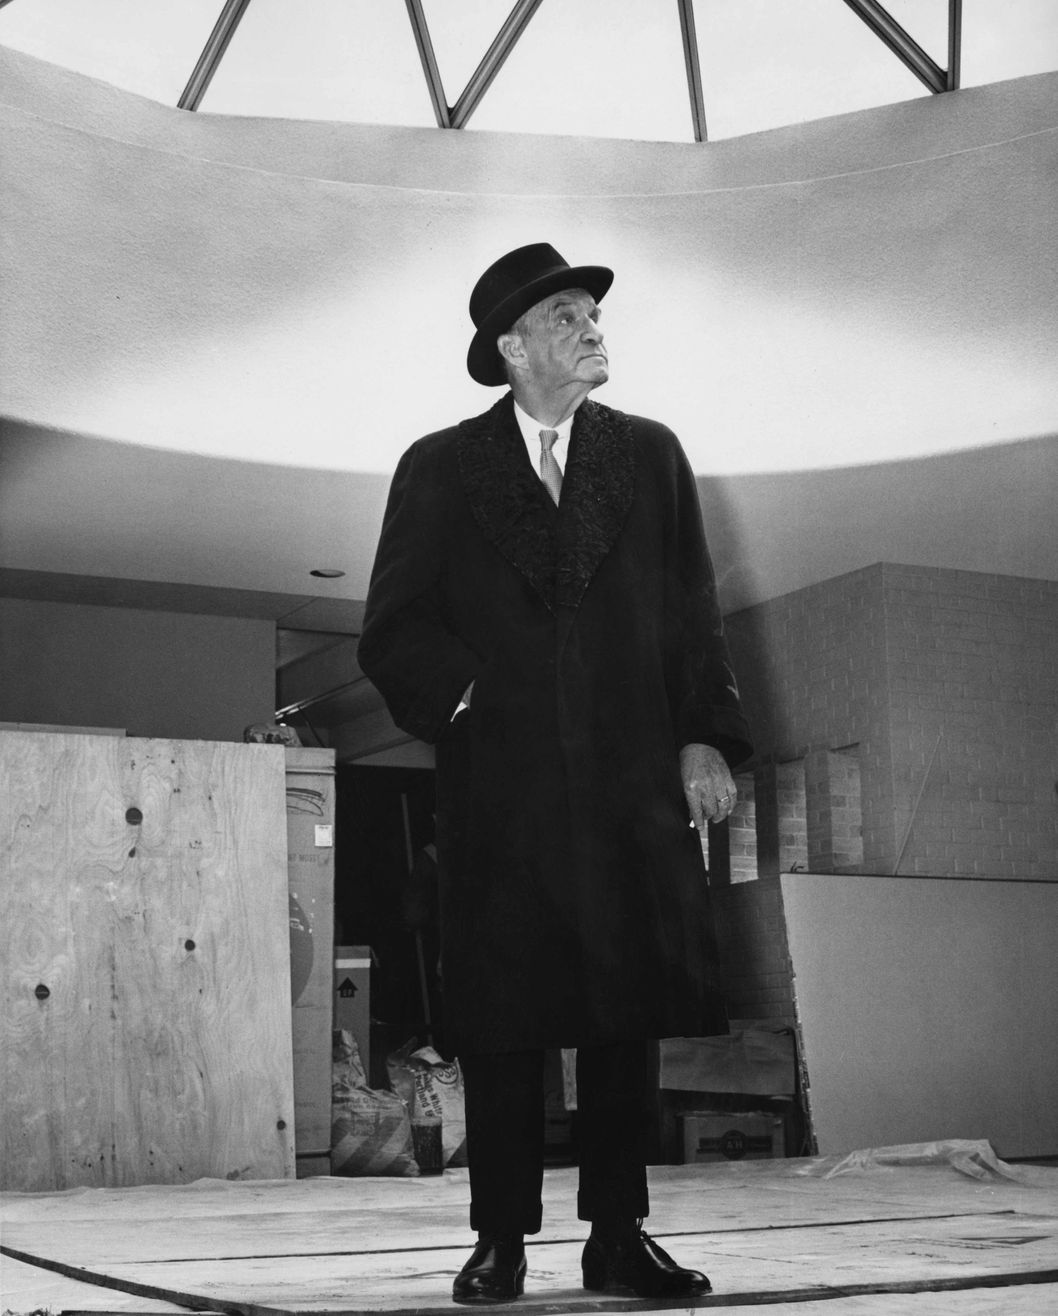 American architect Edward Durell Stone (1902 - 1978) stands in the atrium of the 'modern house' he has created for the New York World's Fair in Flushing Meadows, New York, 9th April 1964. The house is still under construction, only days before the opening of the fair. (Photo by Pictorial Parade/Archive Photos/Getty Images)